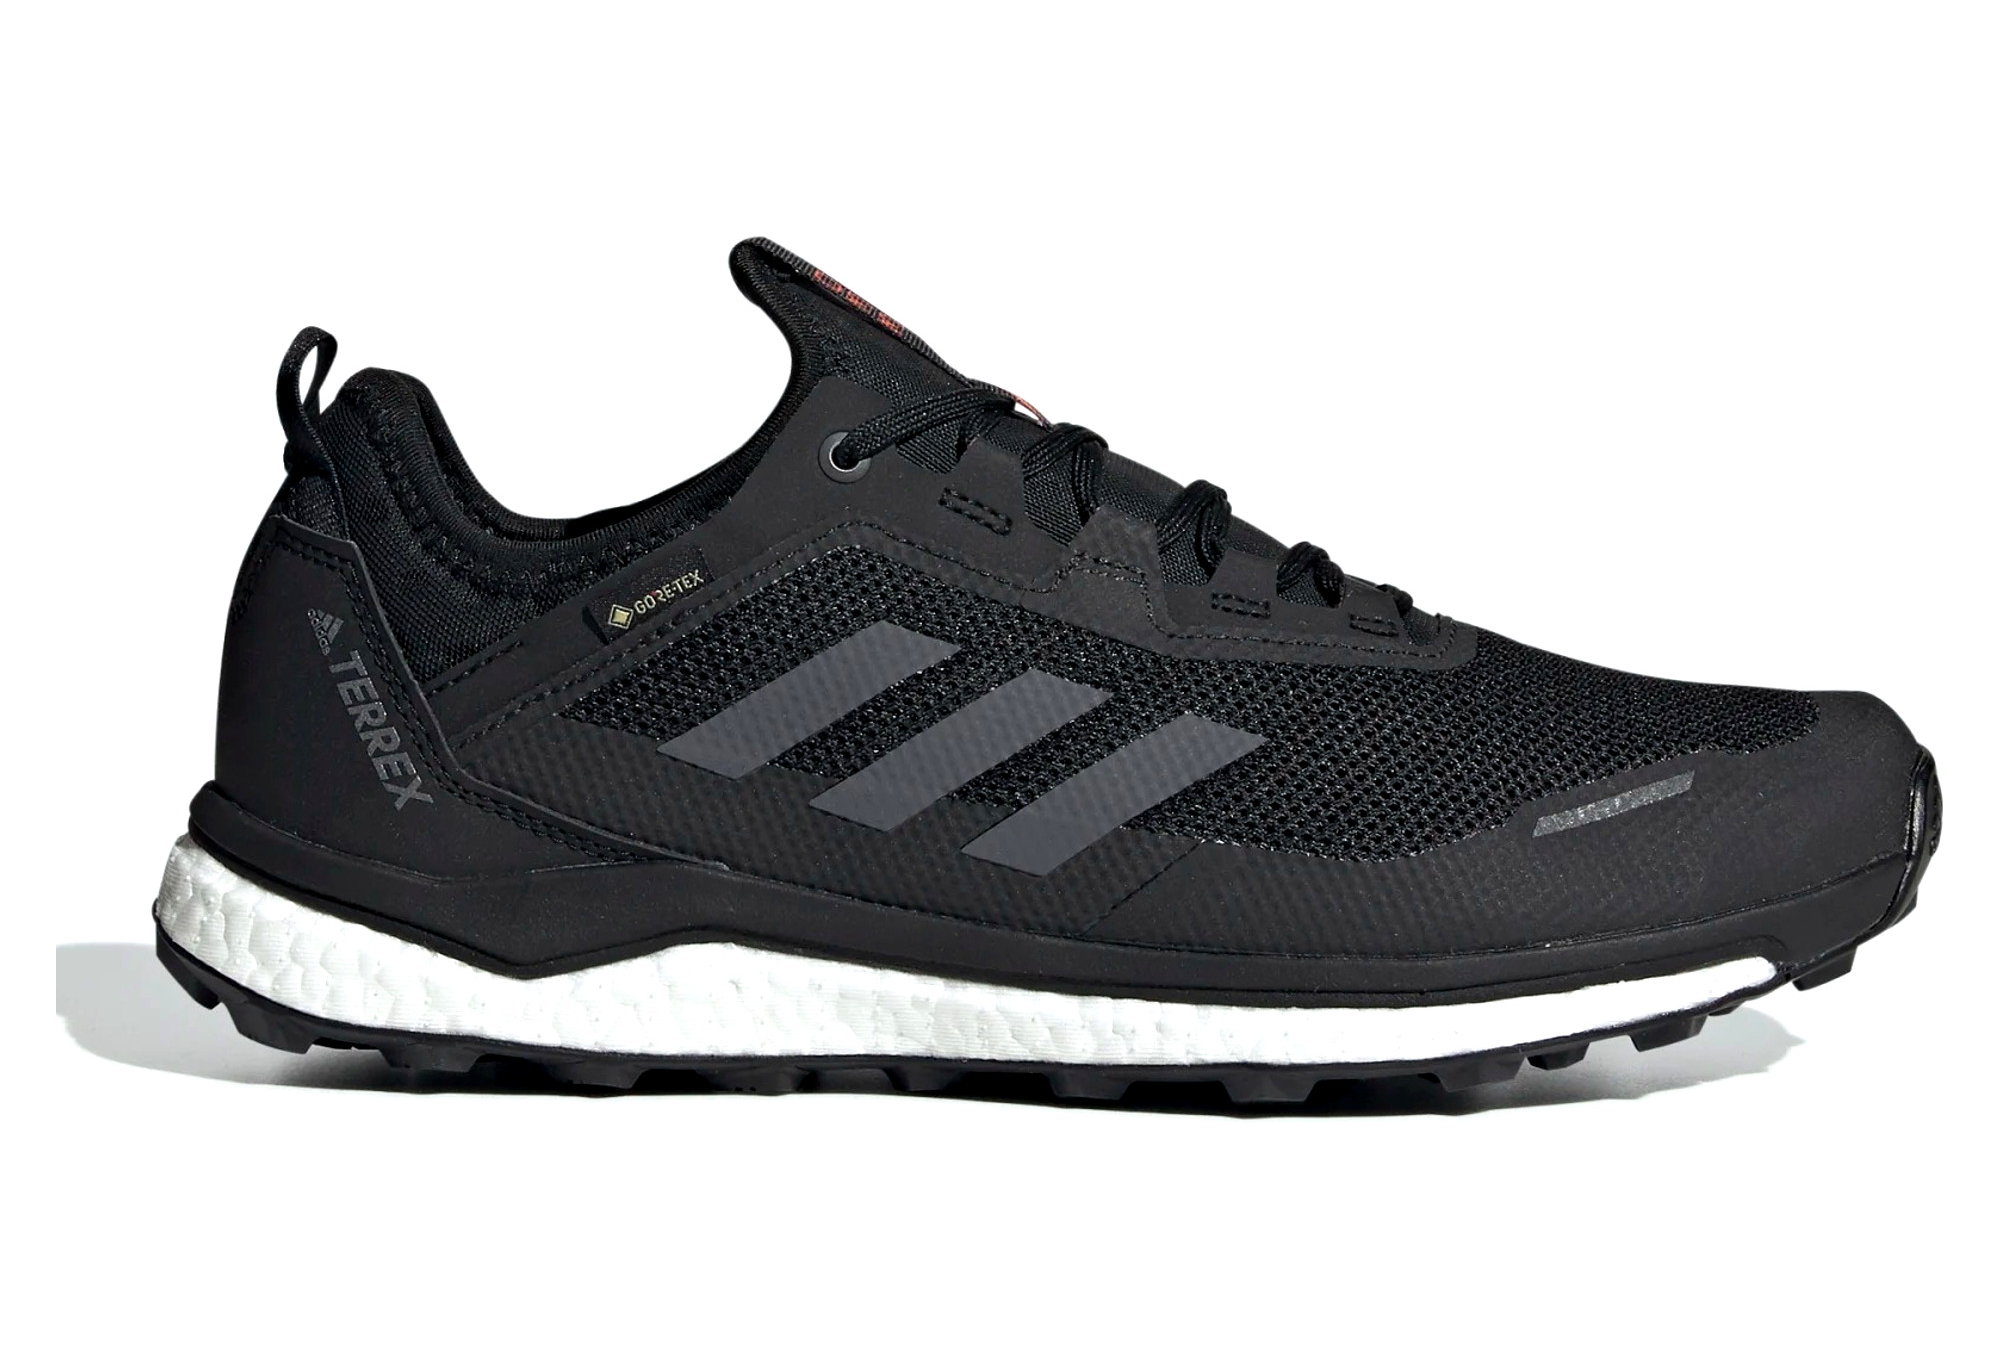 Adidas Terrex Agravic Flow GTX Trail Shoes Black